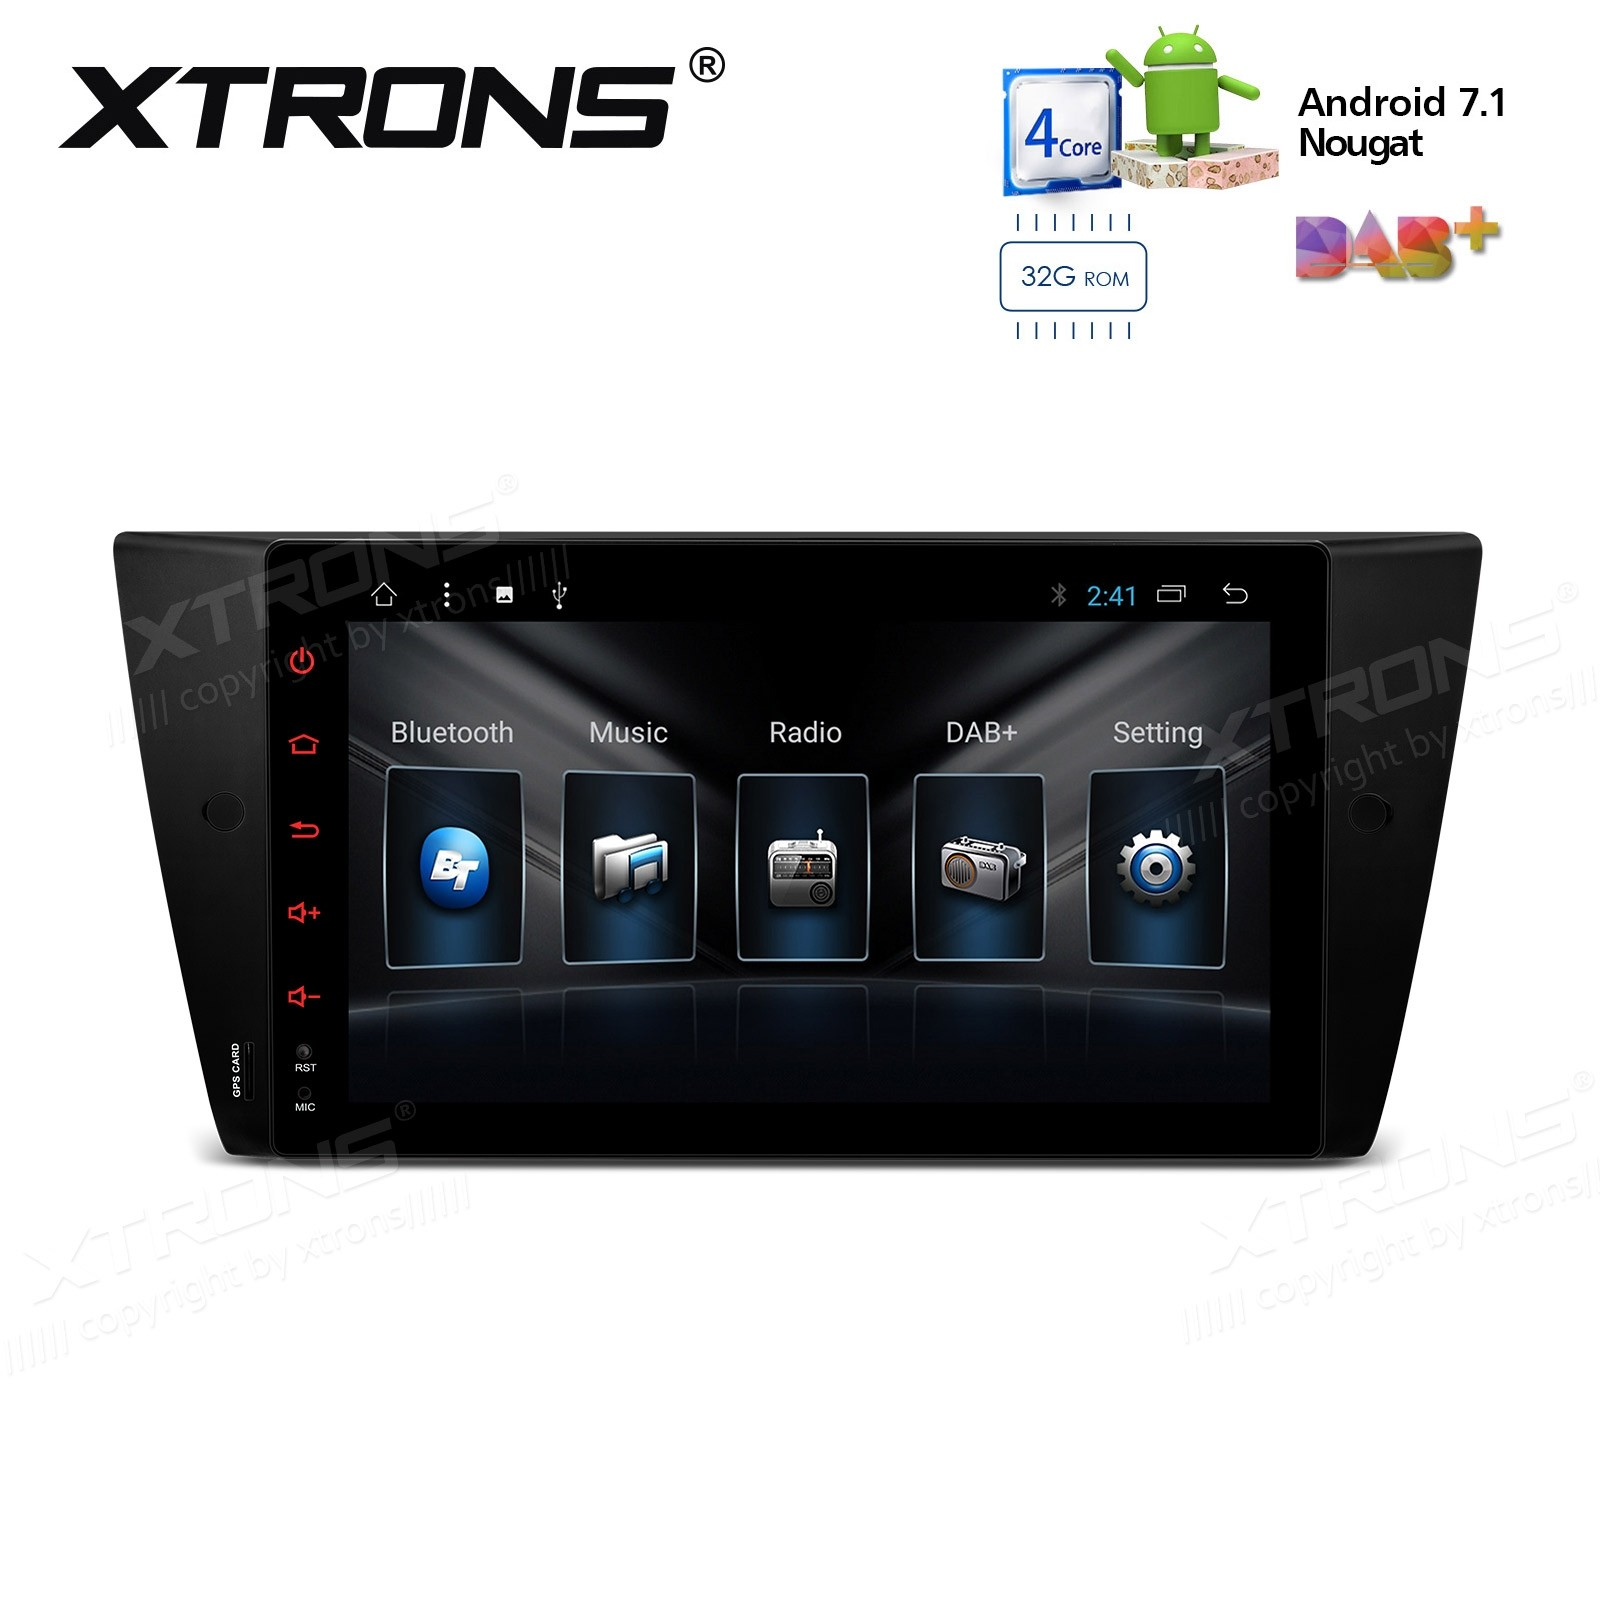 "9"" Android 7.1 Nougat Quad core 32GB ROM + 2GB DDR3 RAM Multimedia HD Digital Touch Screen Car Stereo Custom Fit for BMW"